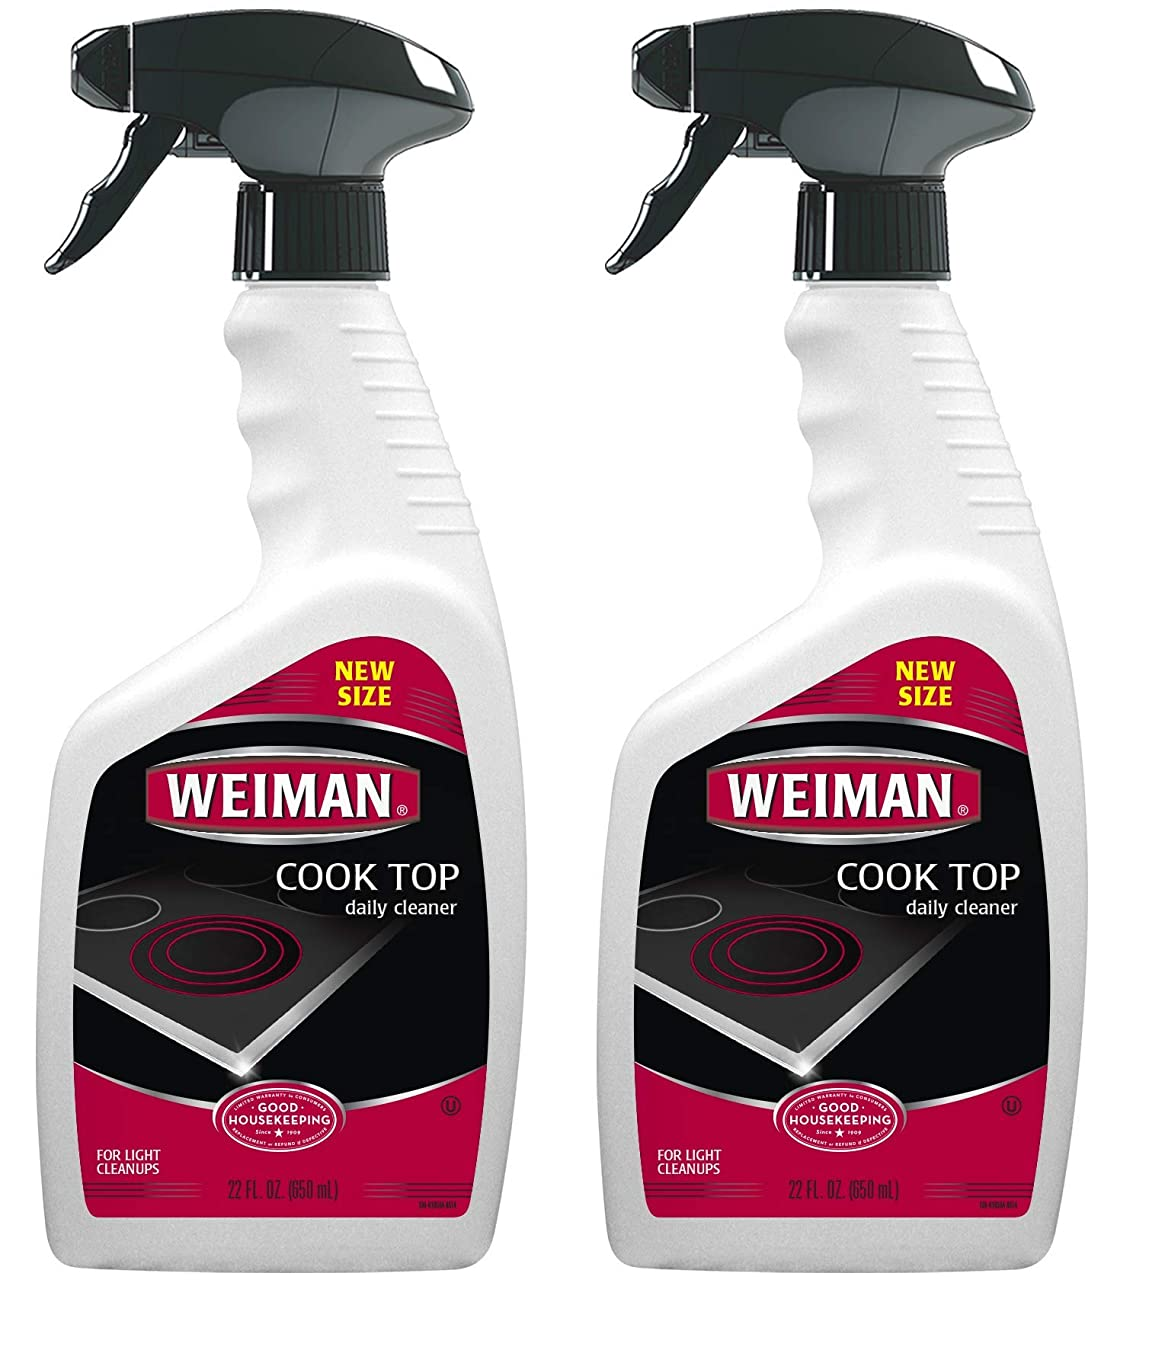 Weiman Cook Top Daily Cleaner [2 Pack] Streak Free, Residue Free, Non-abrasive formula, 22 fl. Oz